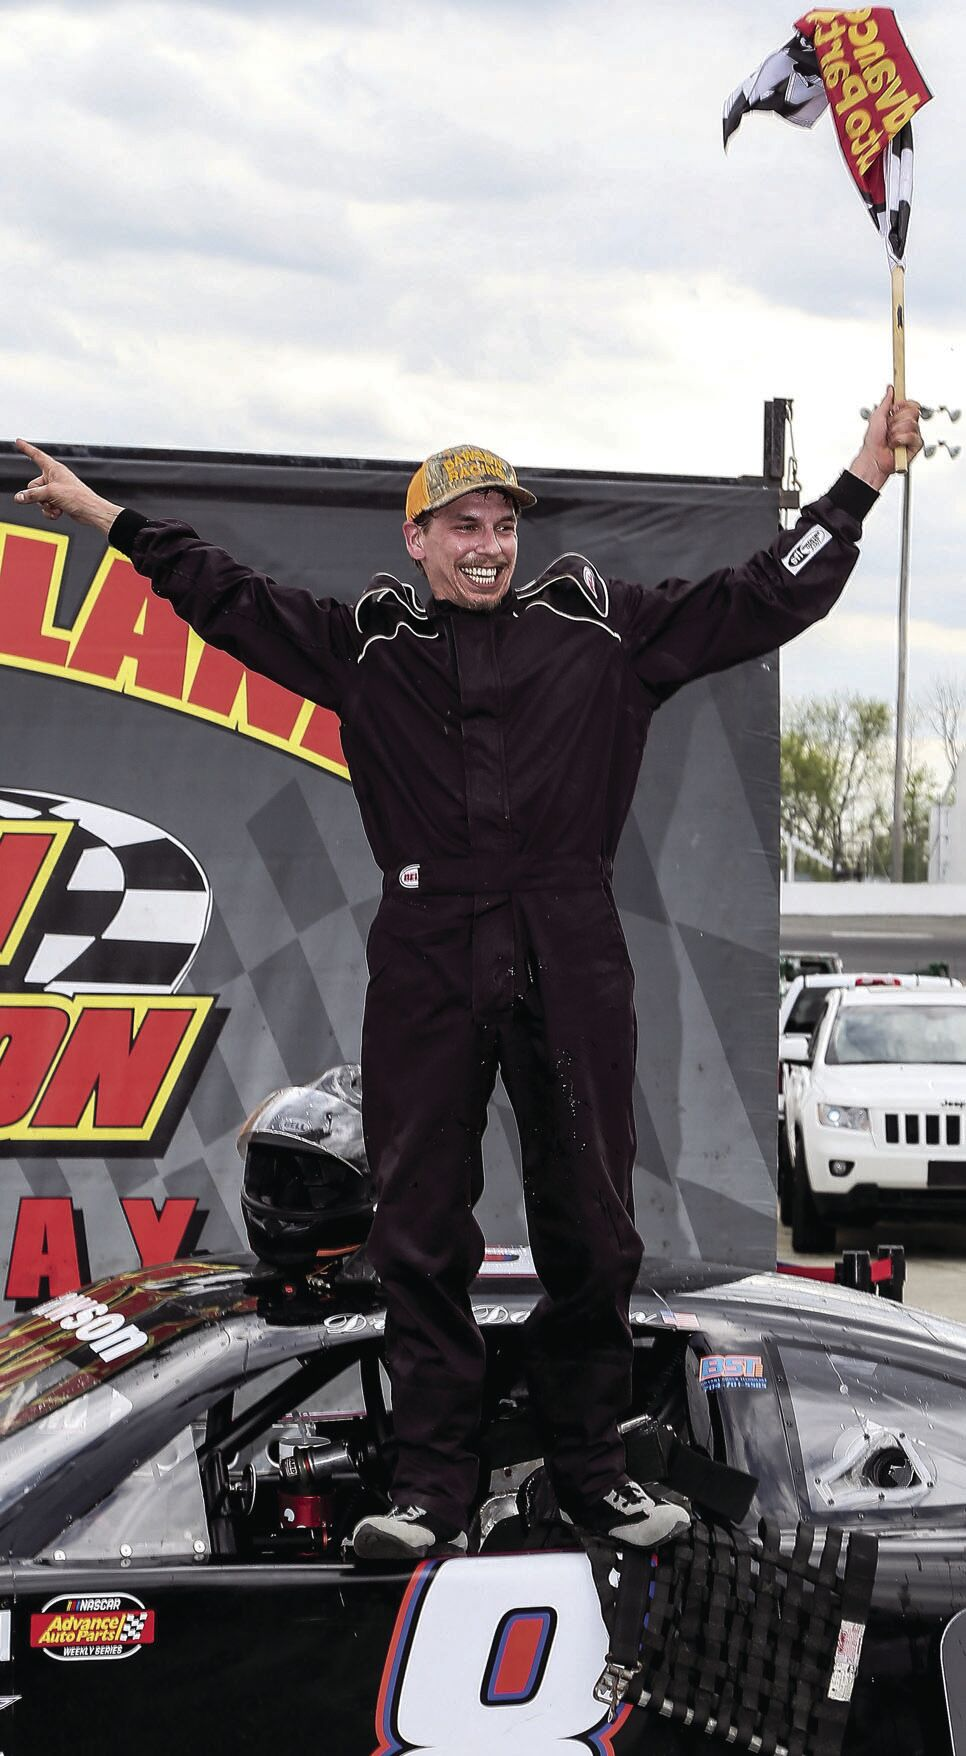 Crews emerges as a frontrunner in Late Model class